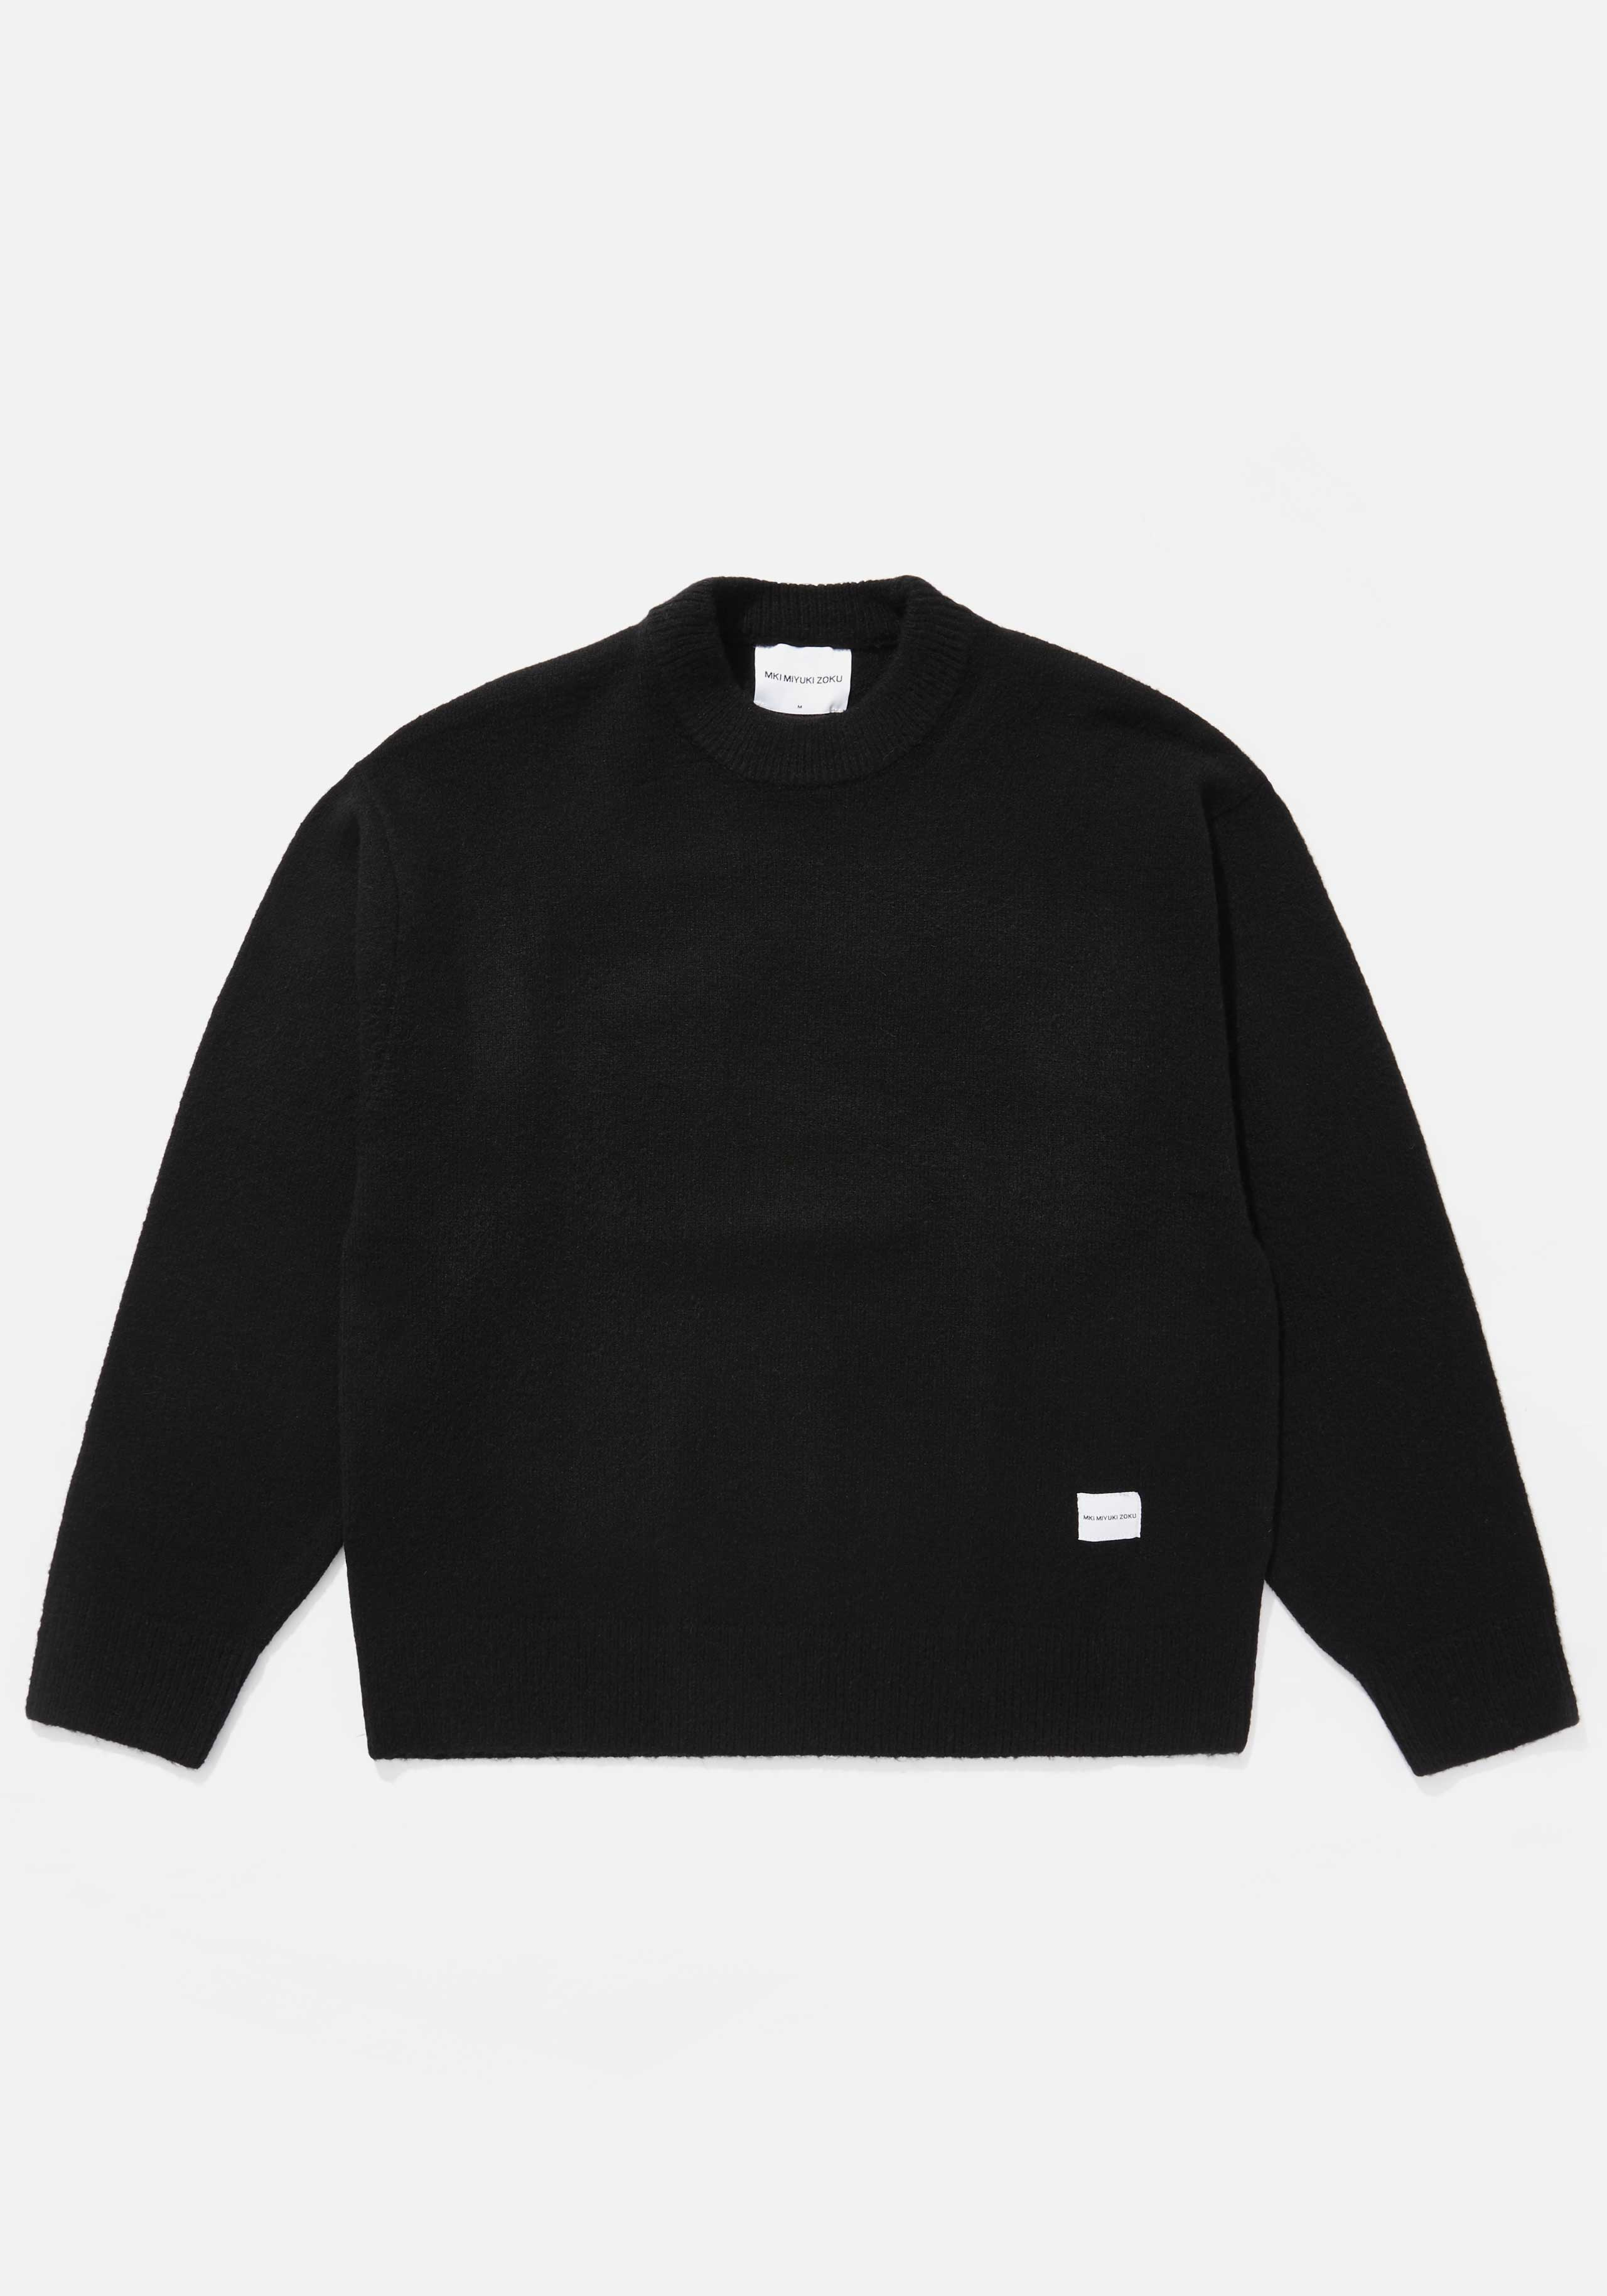 mki heavy knit crewneck 1